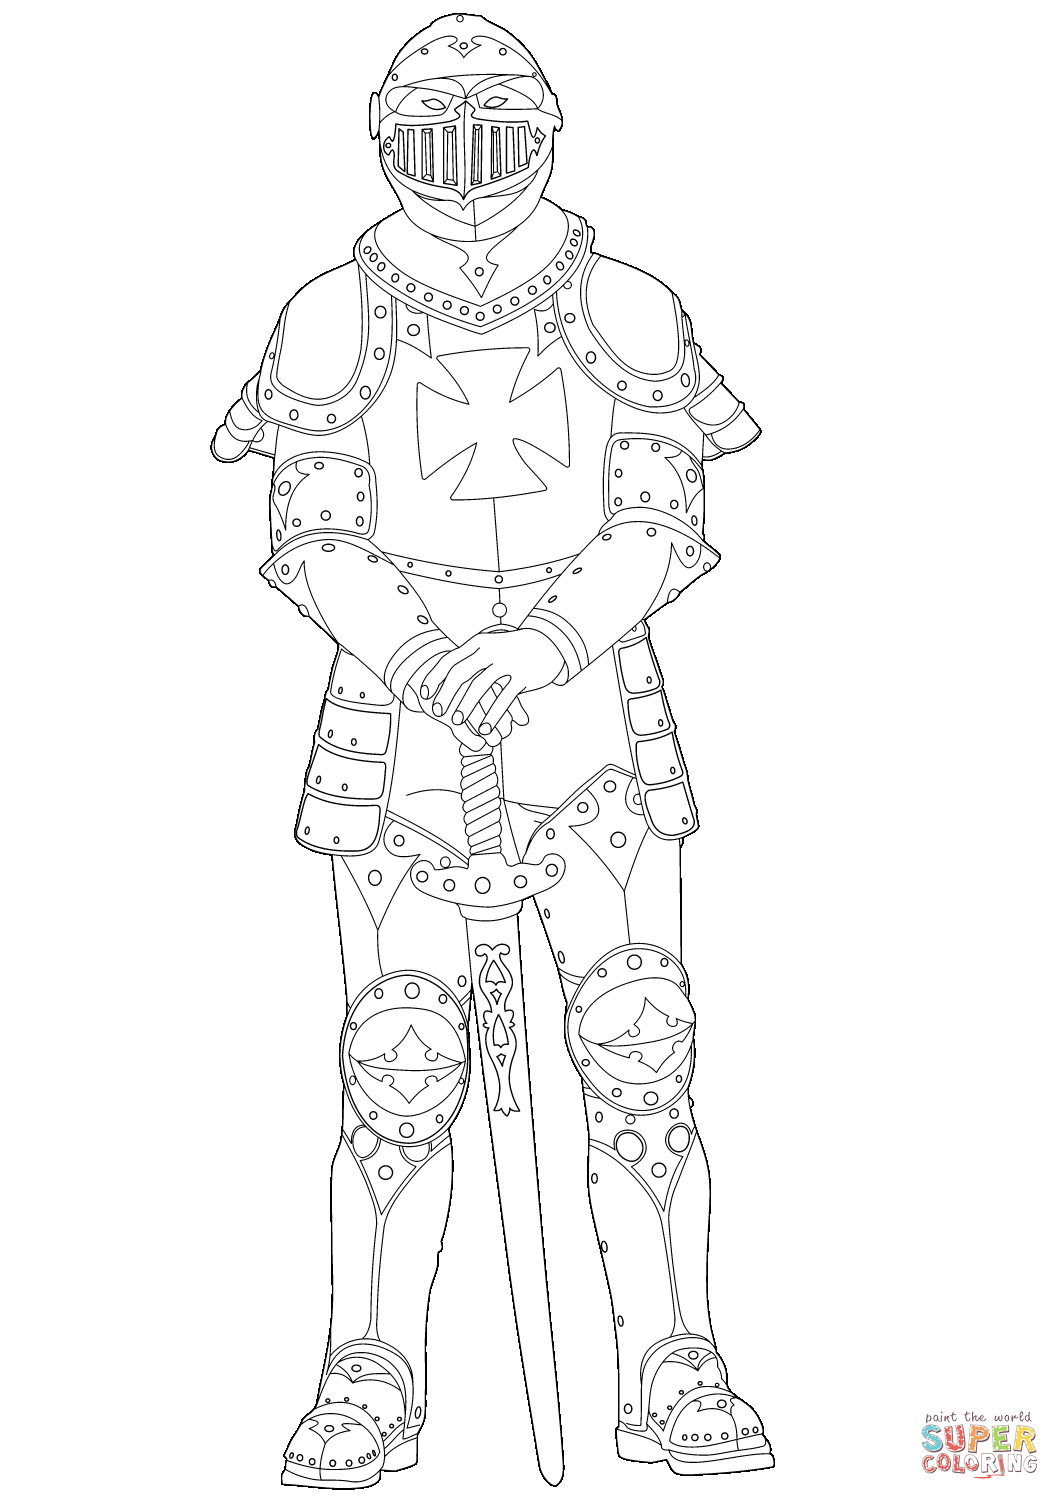 medieval knight coloring pages bluebonkers medieval knights in armor coloring sheets medieval coloring pages knight